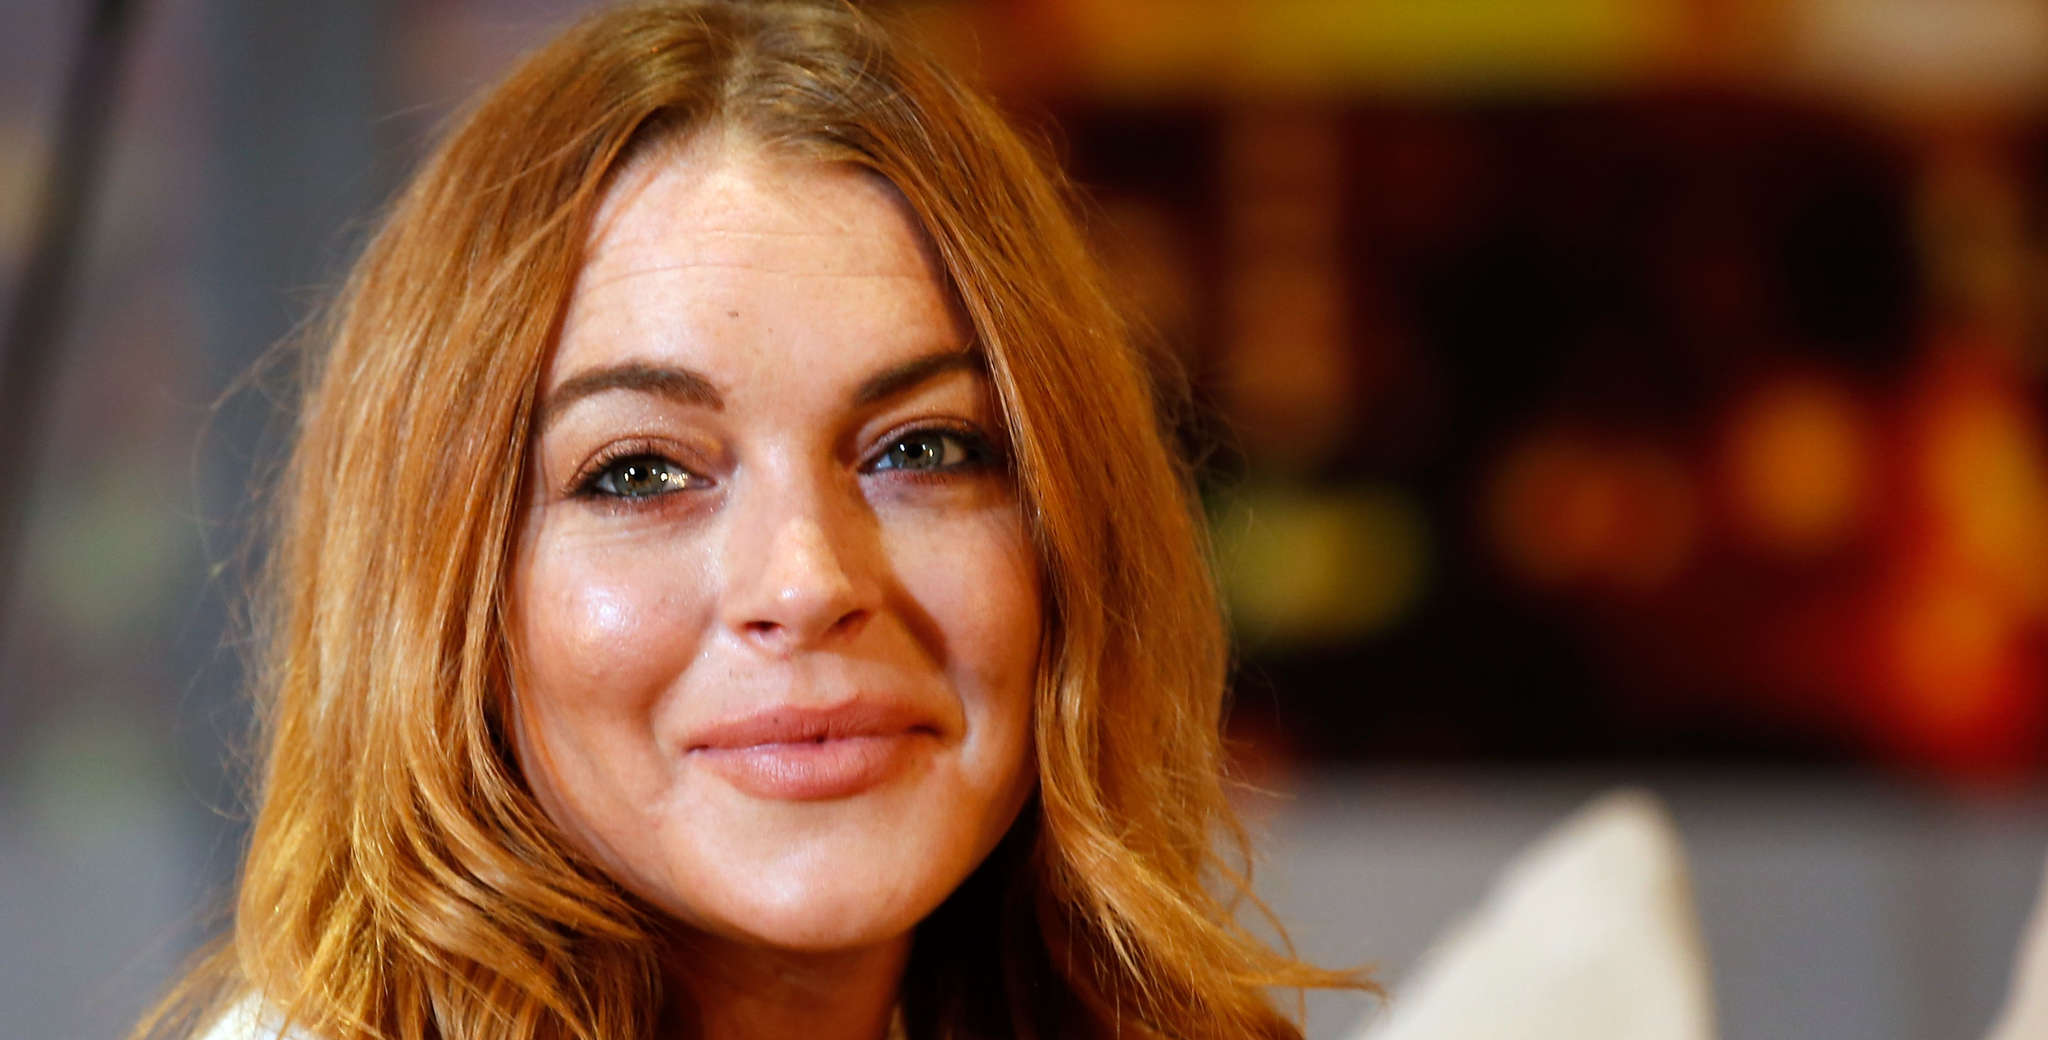 Rumor has it that Lindsay Lohan and boyfriend Egor Tarabasov are engaged, but the story was quickly squashed by her rep.